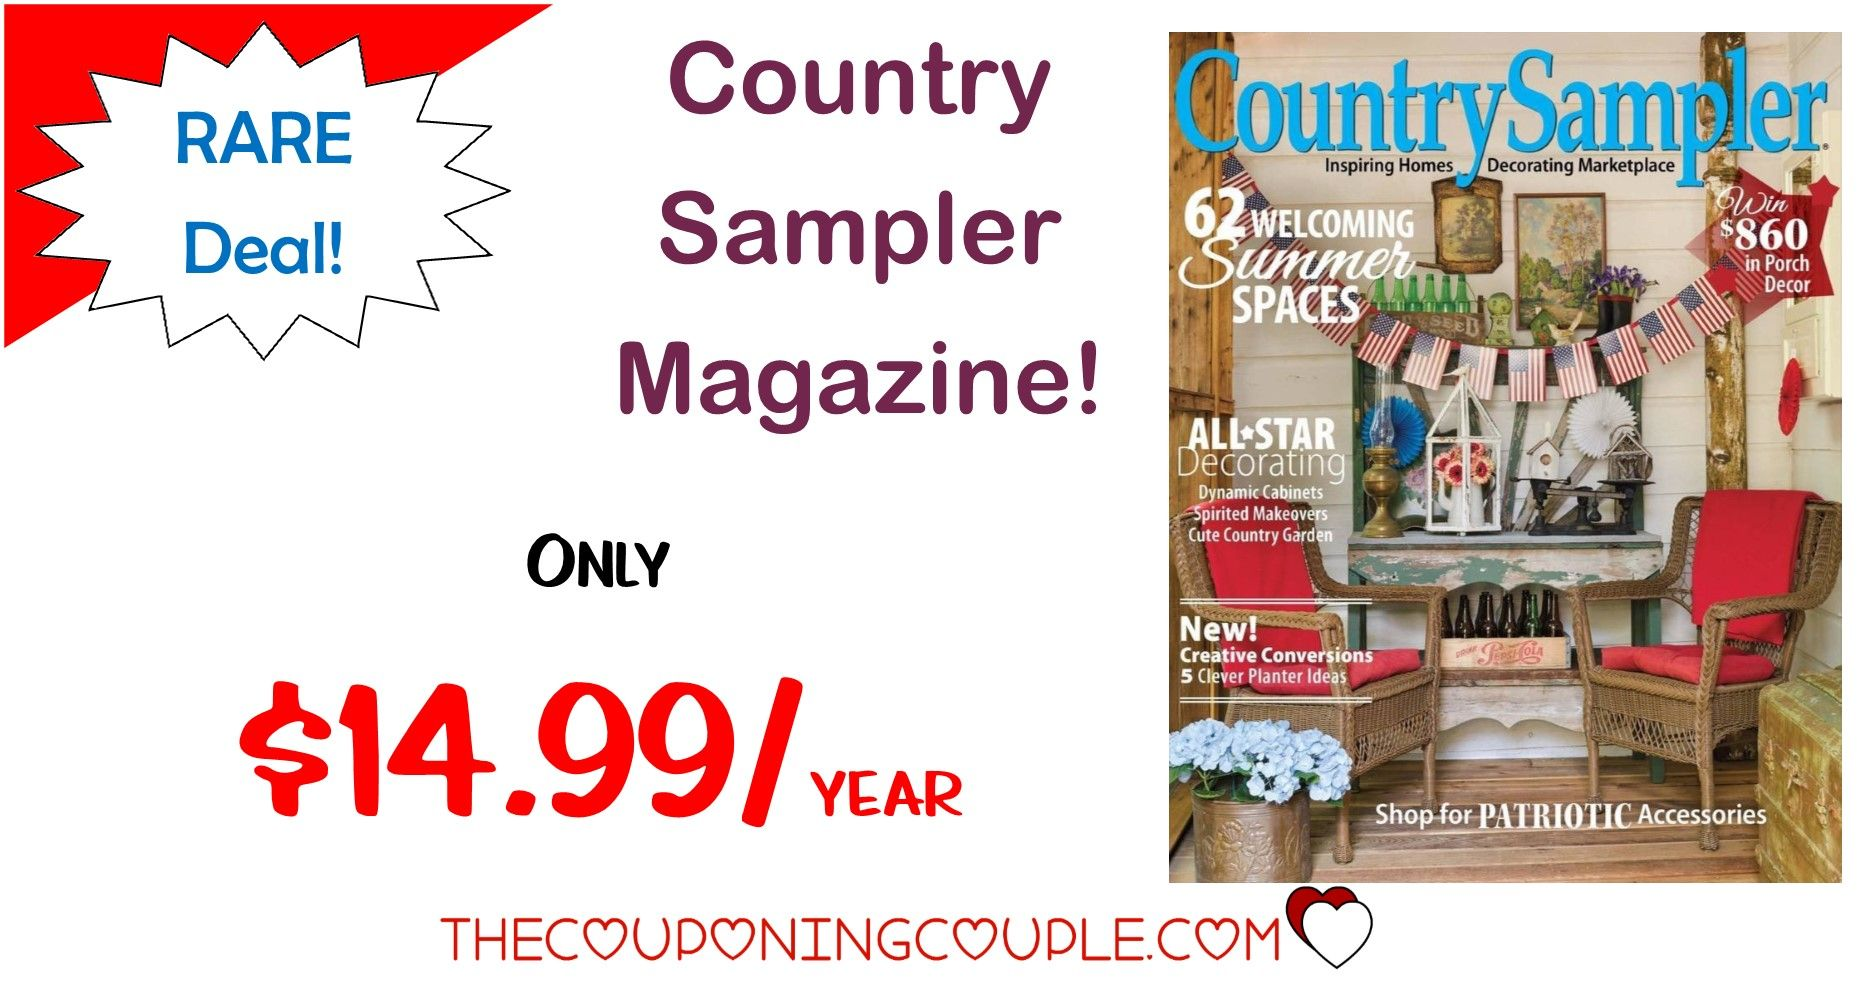 Rare deal country sampler magazine only 1499year